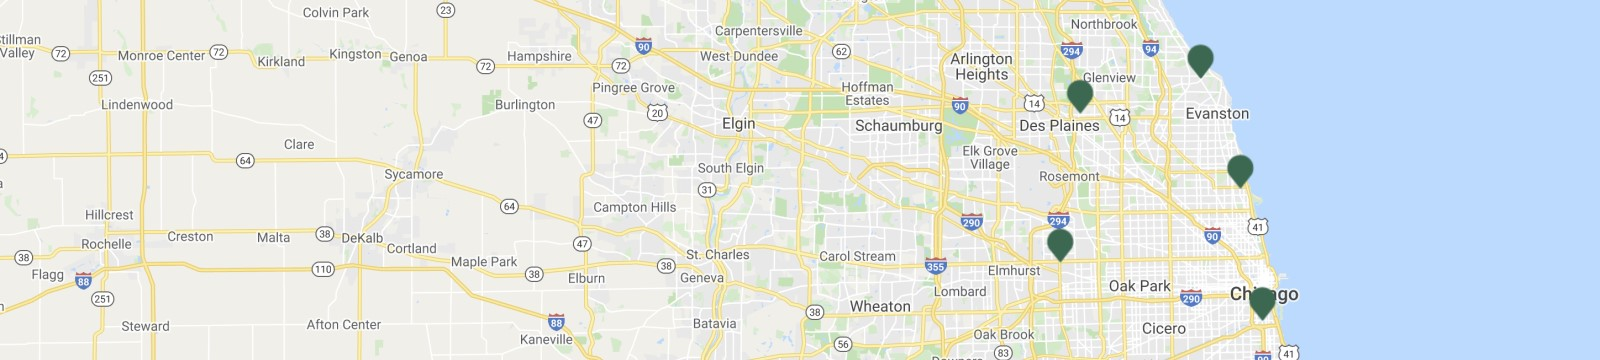 Google Map shows INBK's 5 locations in Great Chicago Area.